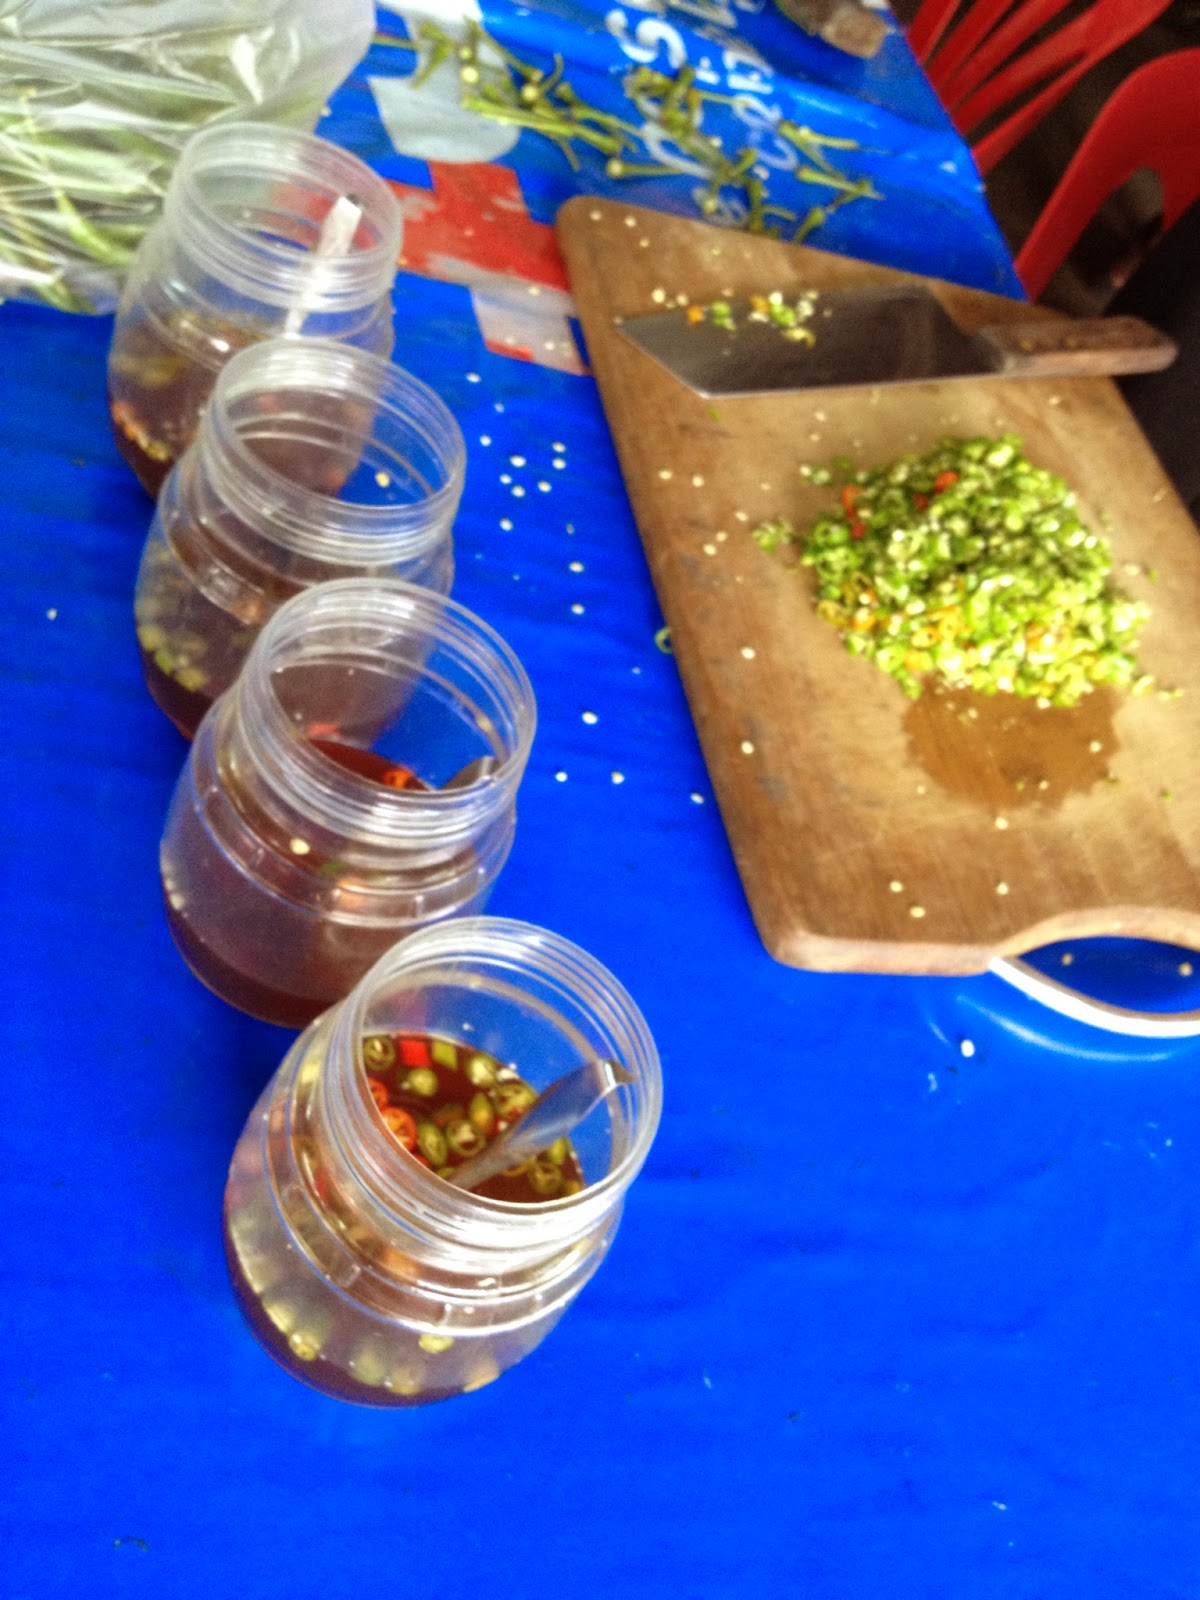 Chiang Mai - Making a condiment of hot peppers and fish sauce